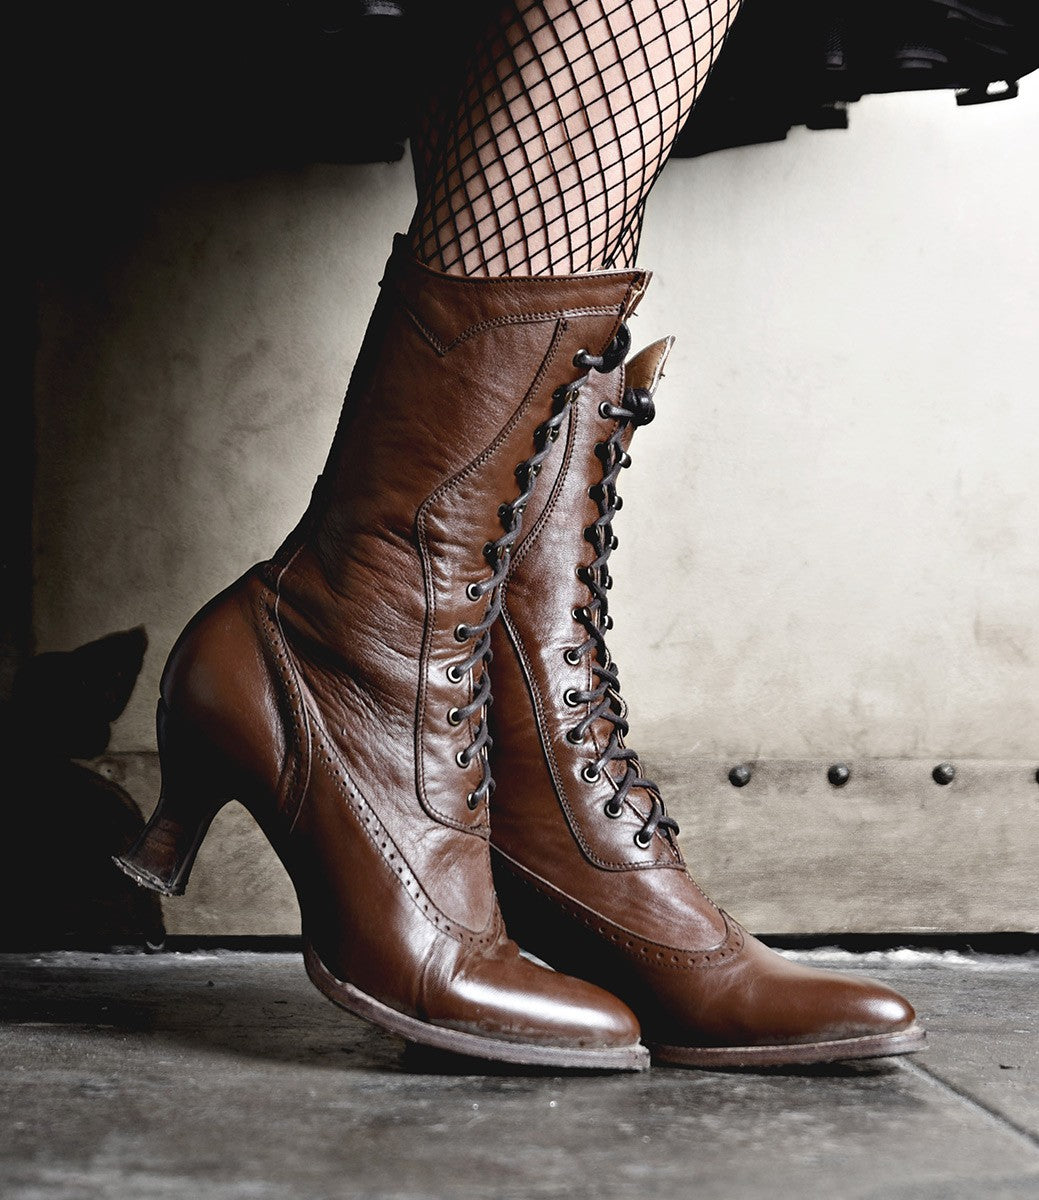 Modern Victorian Lace Up Leather Boots